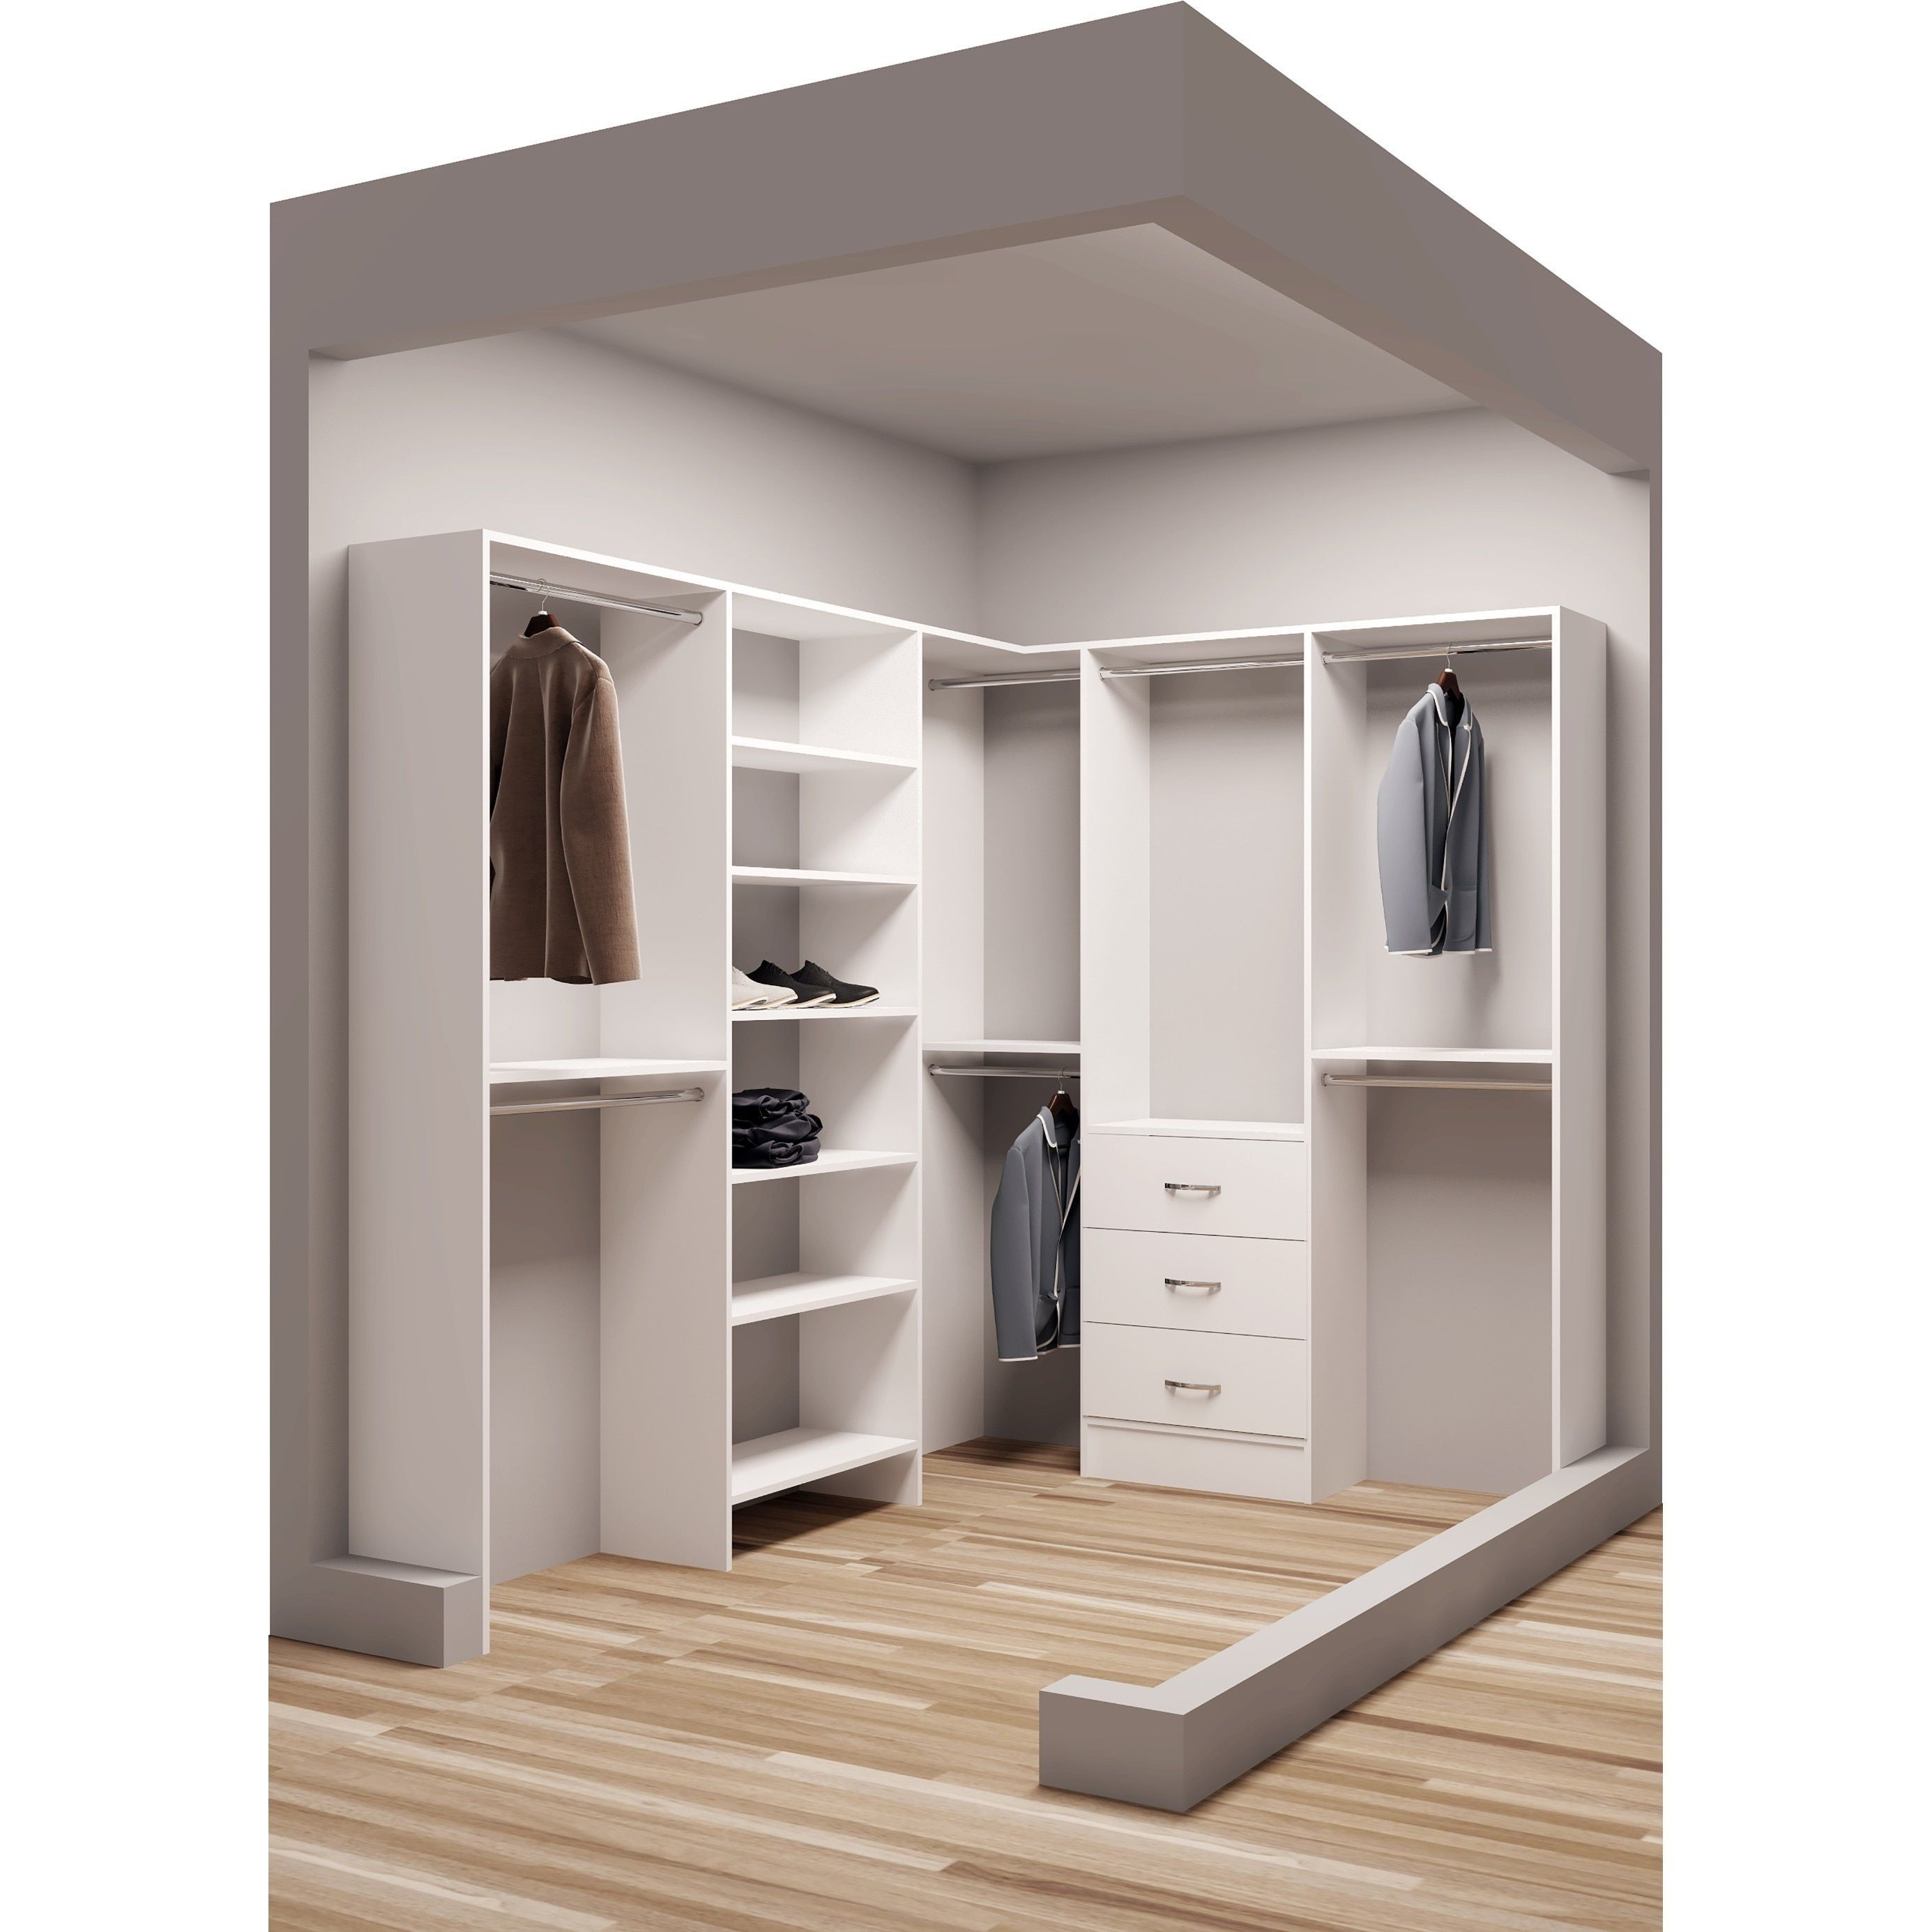 Tidysquares classic white wood 75 inch x Pictures of closet organizers